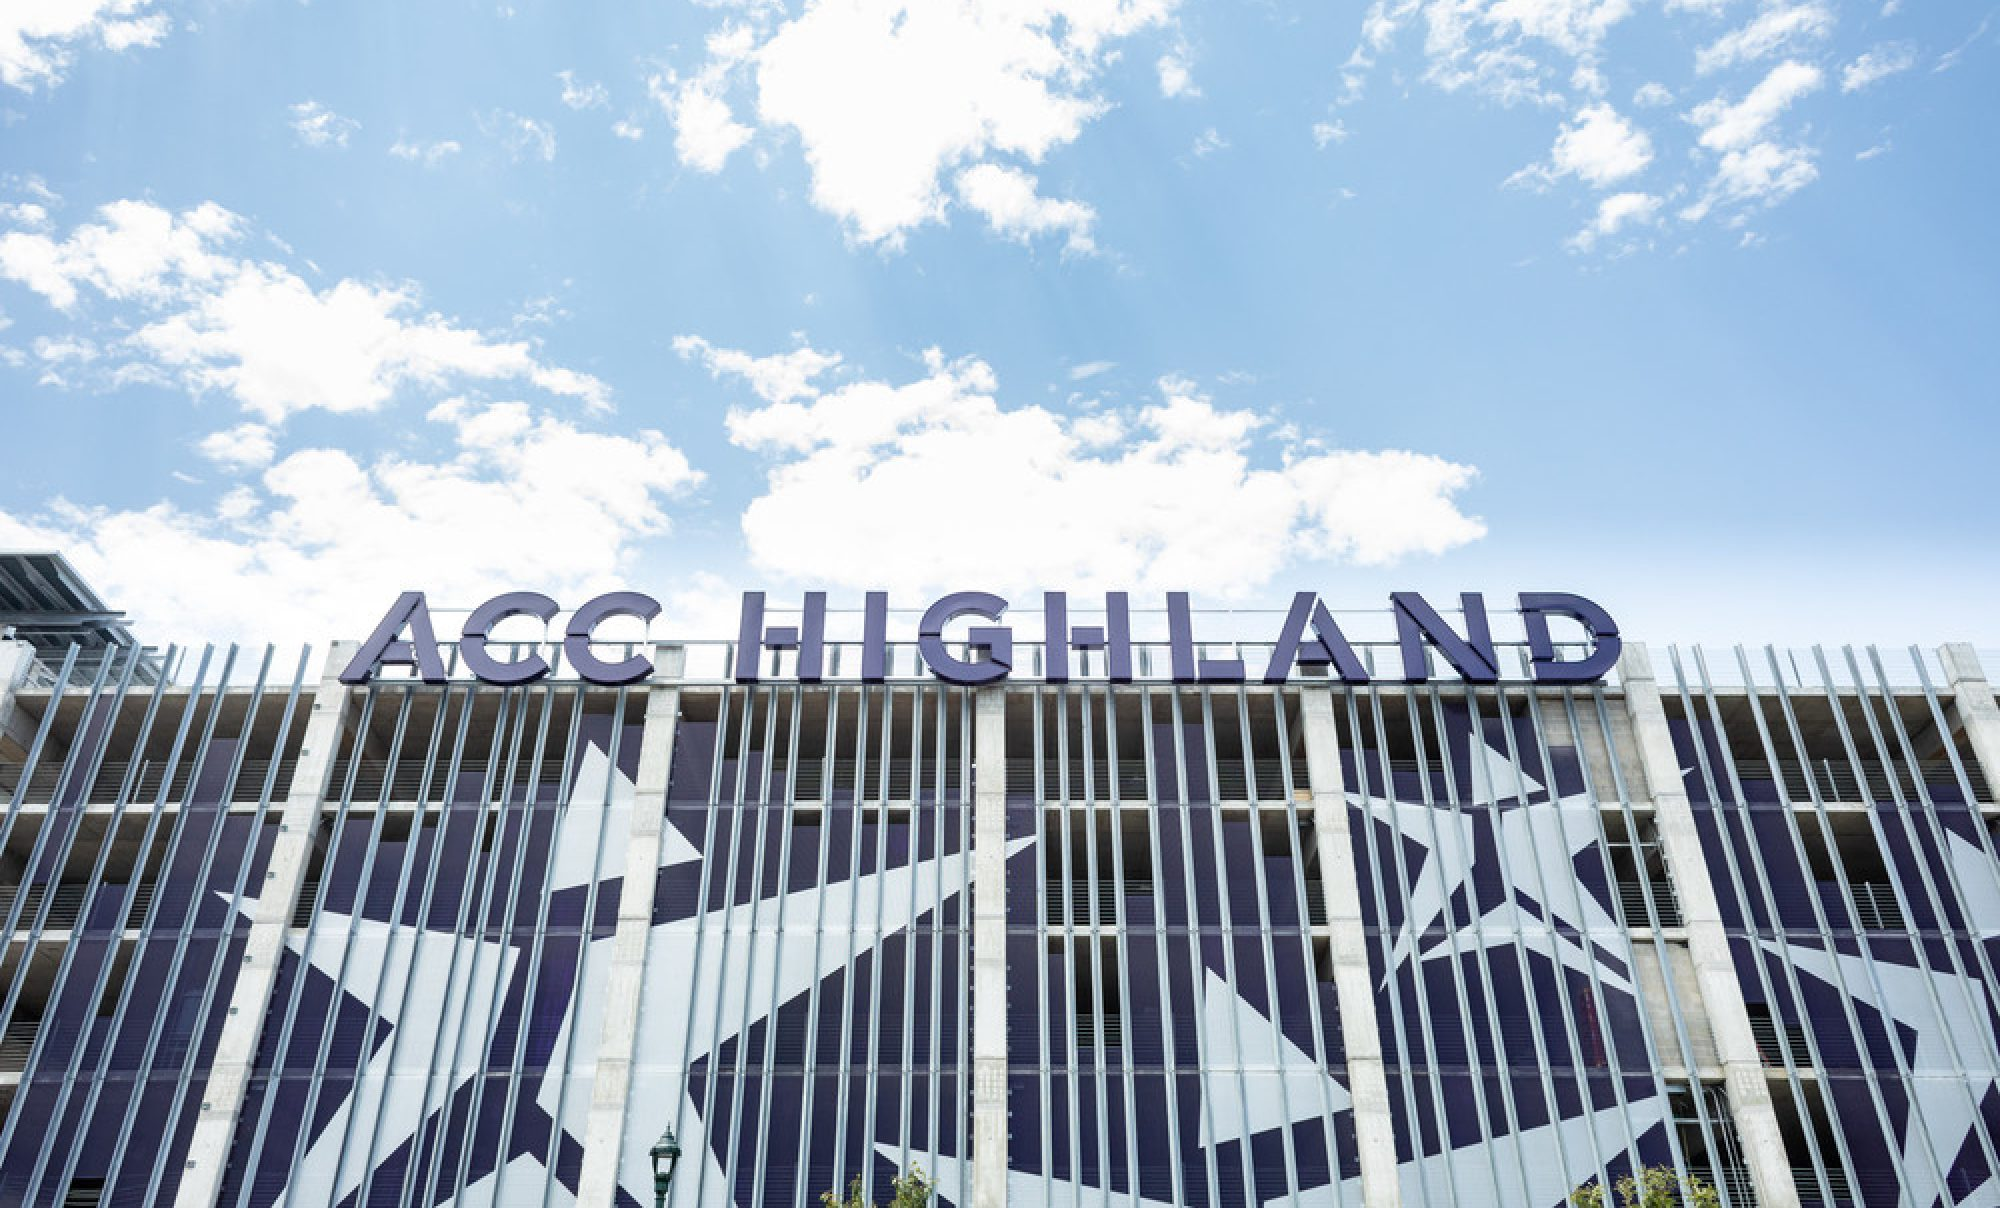 The Future of ACC Highland